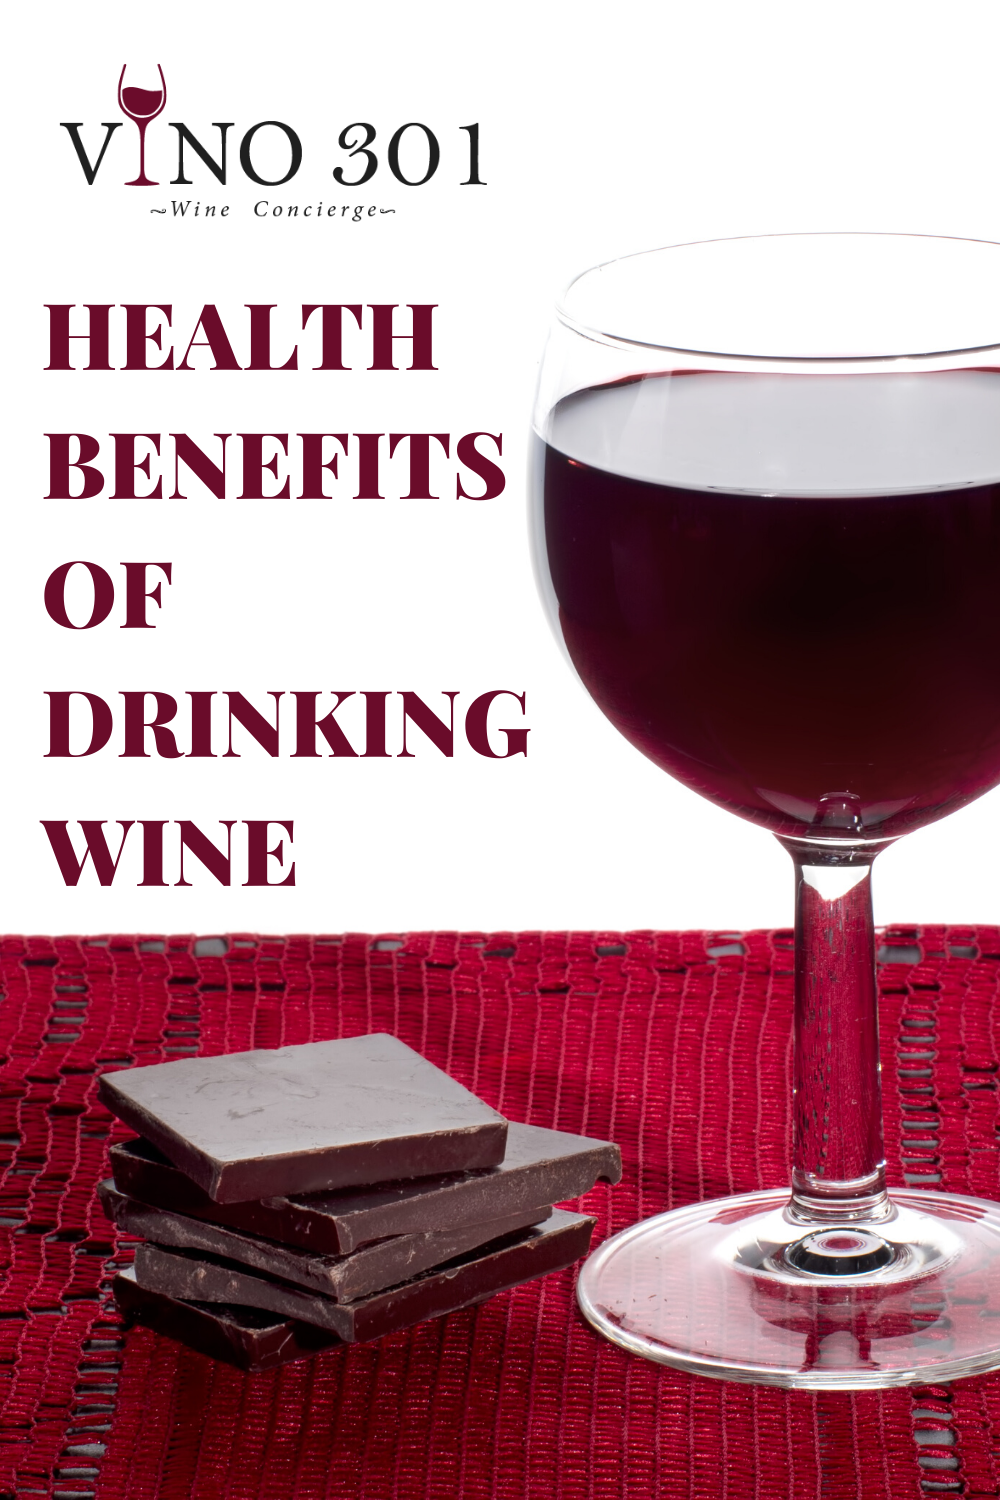 Health Benefits Of Drinking Wine In 2020 Wine Benefits Health Wine Drinks Drink Wine Day